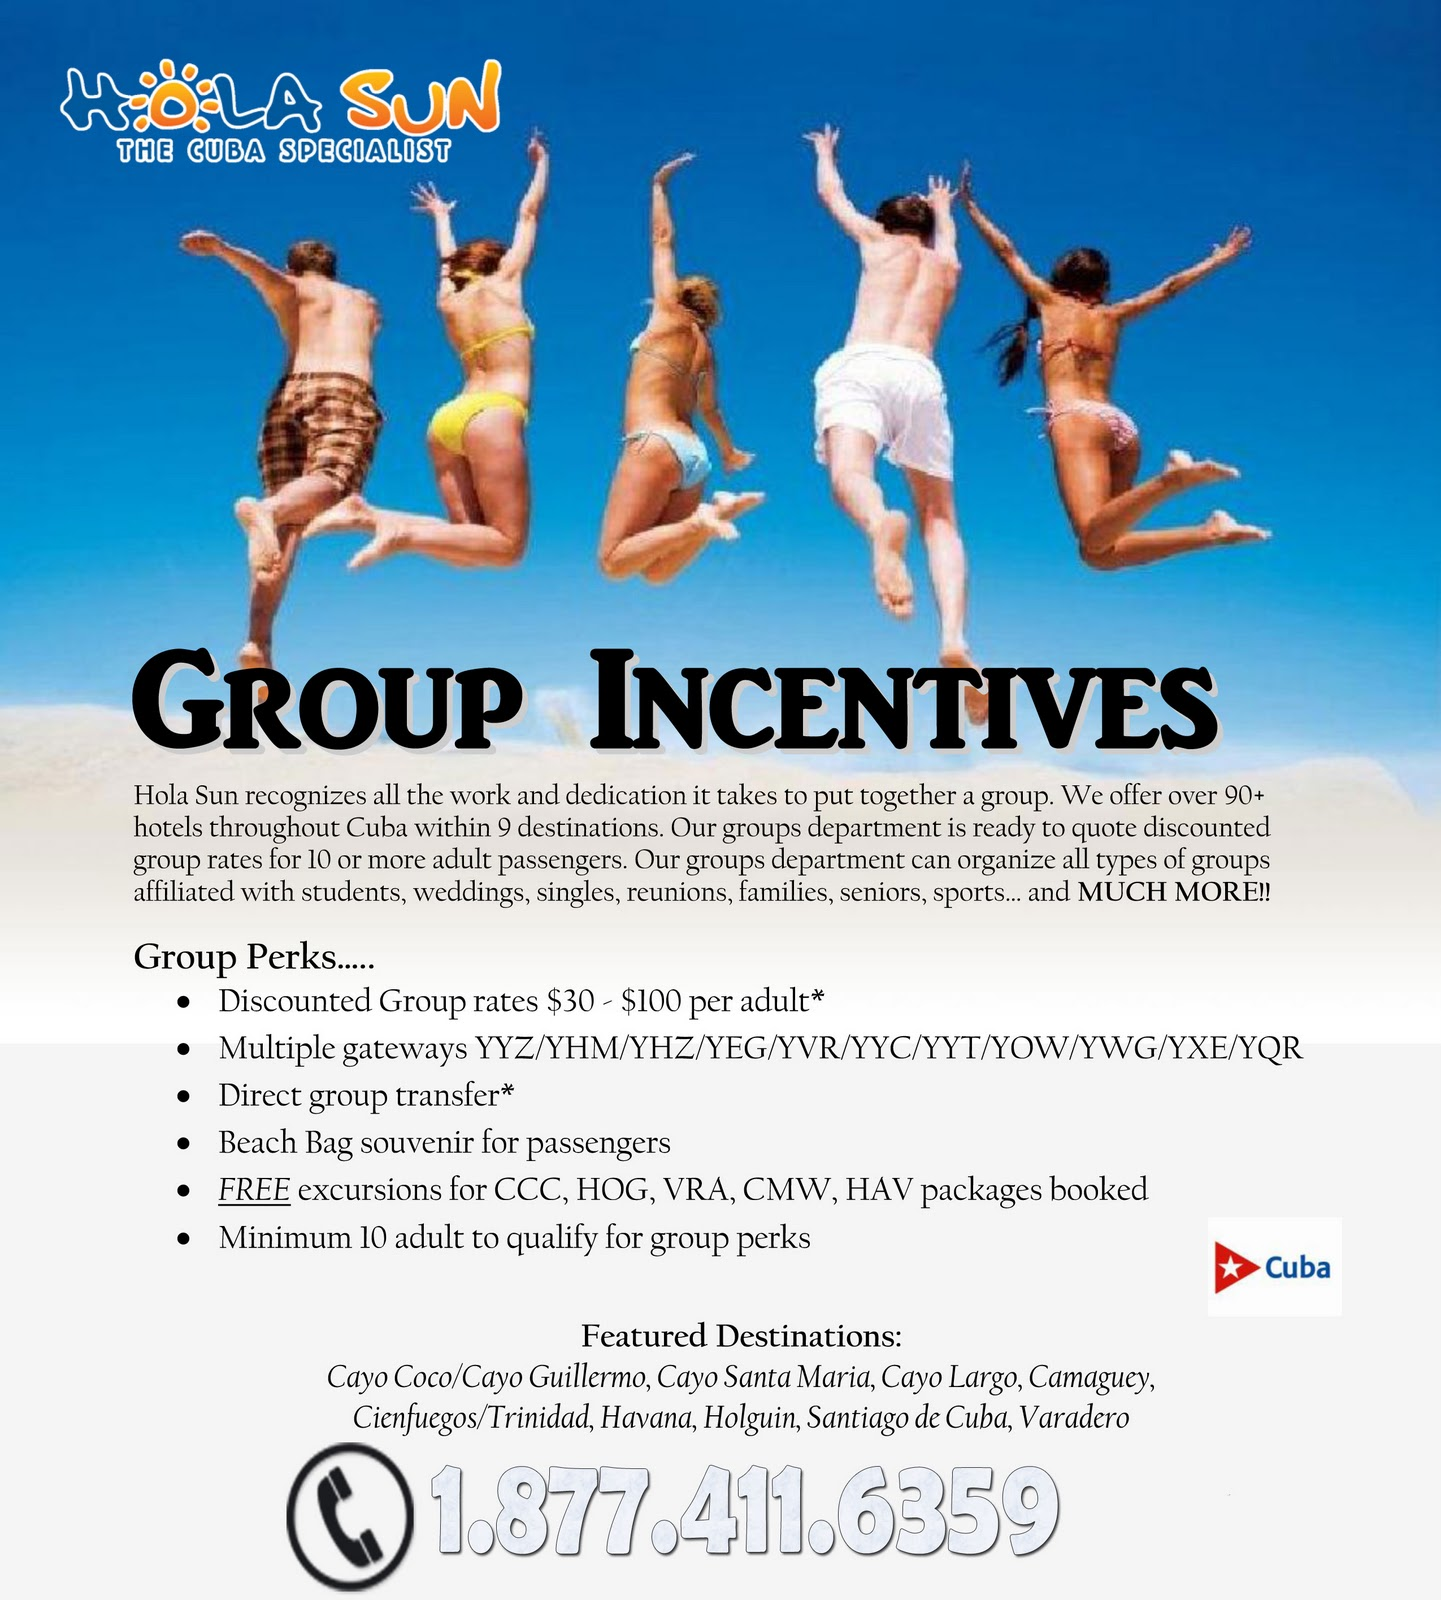 First Incentive Group 116